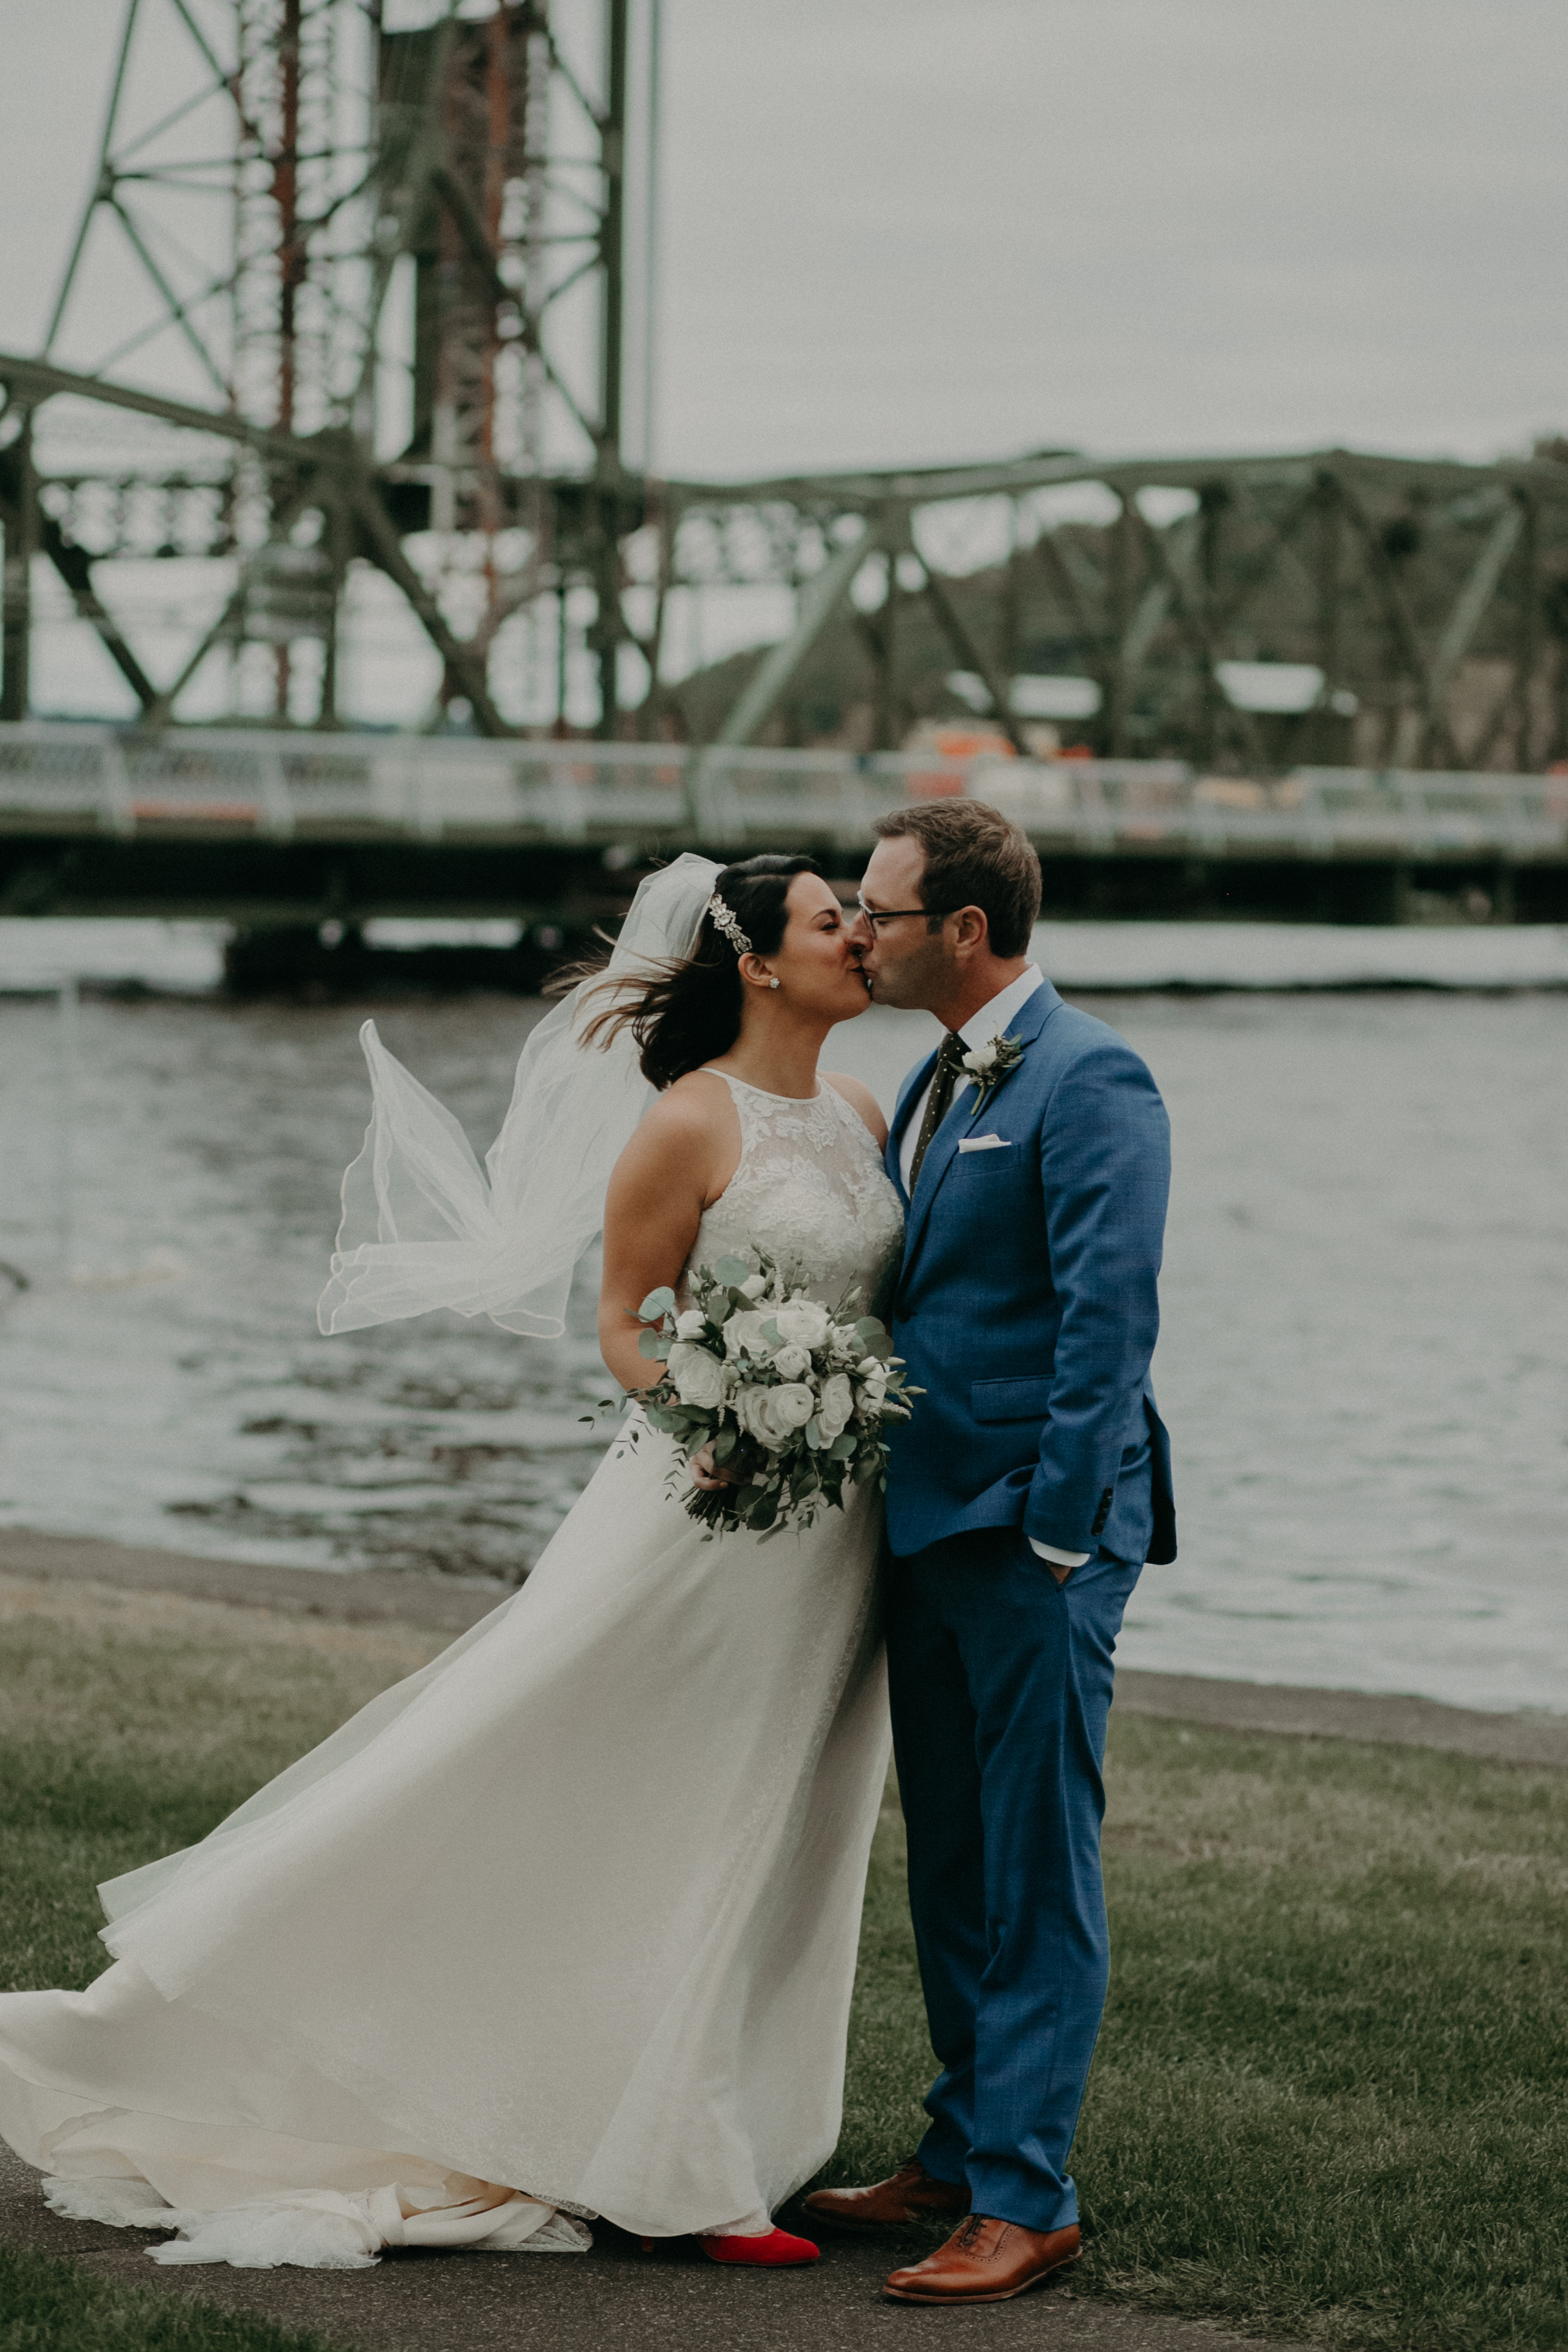 Stillwater MN bridge bride and groom portraits captured by Andrea Wagner Photography